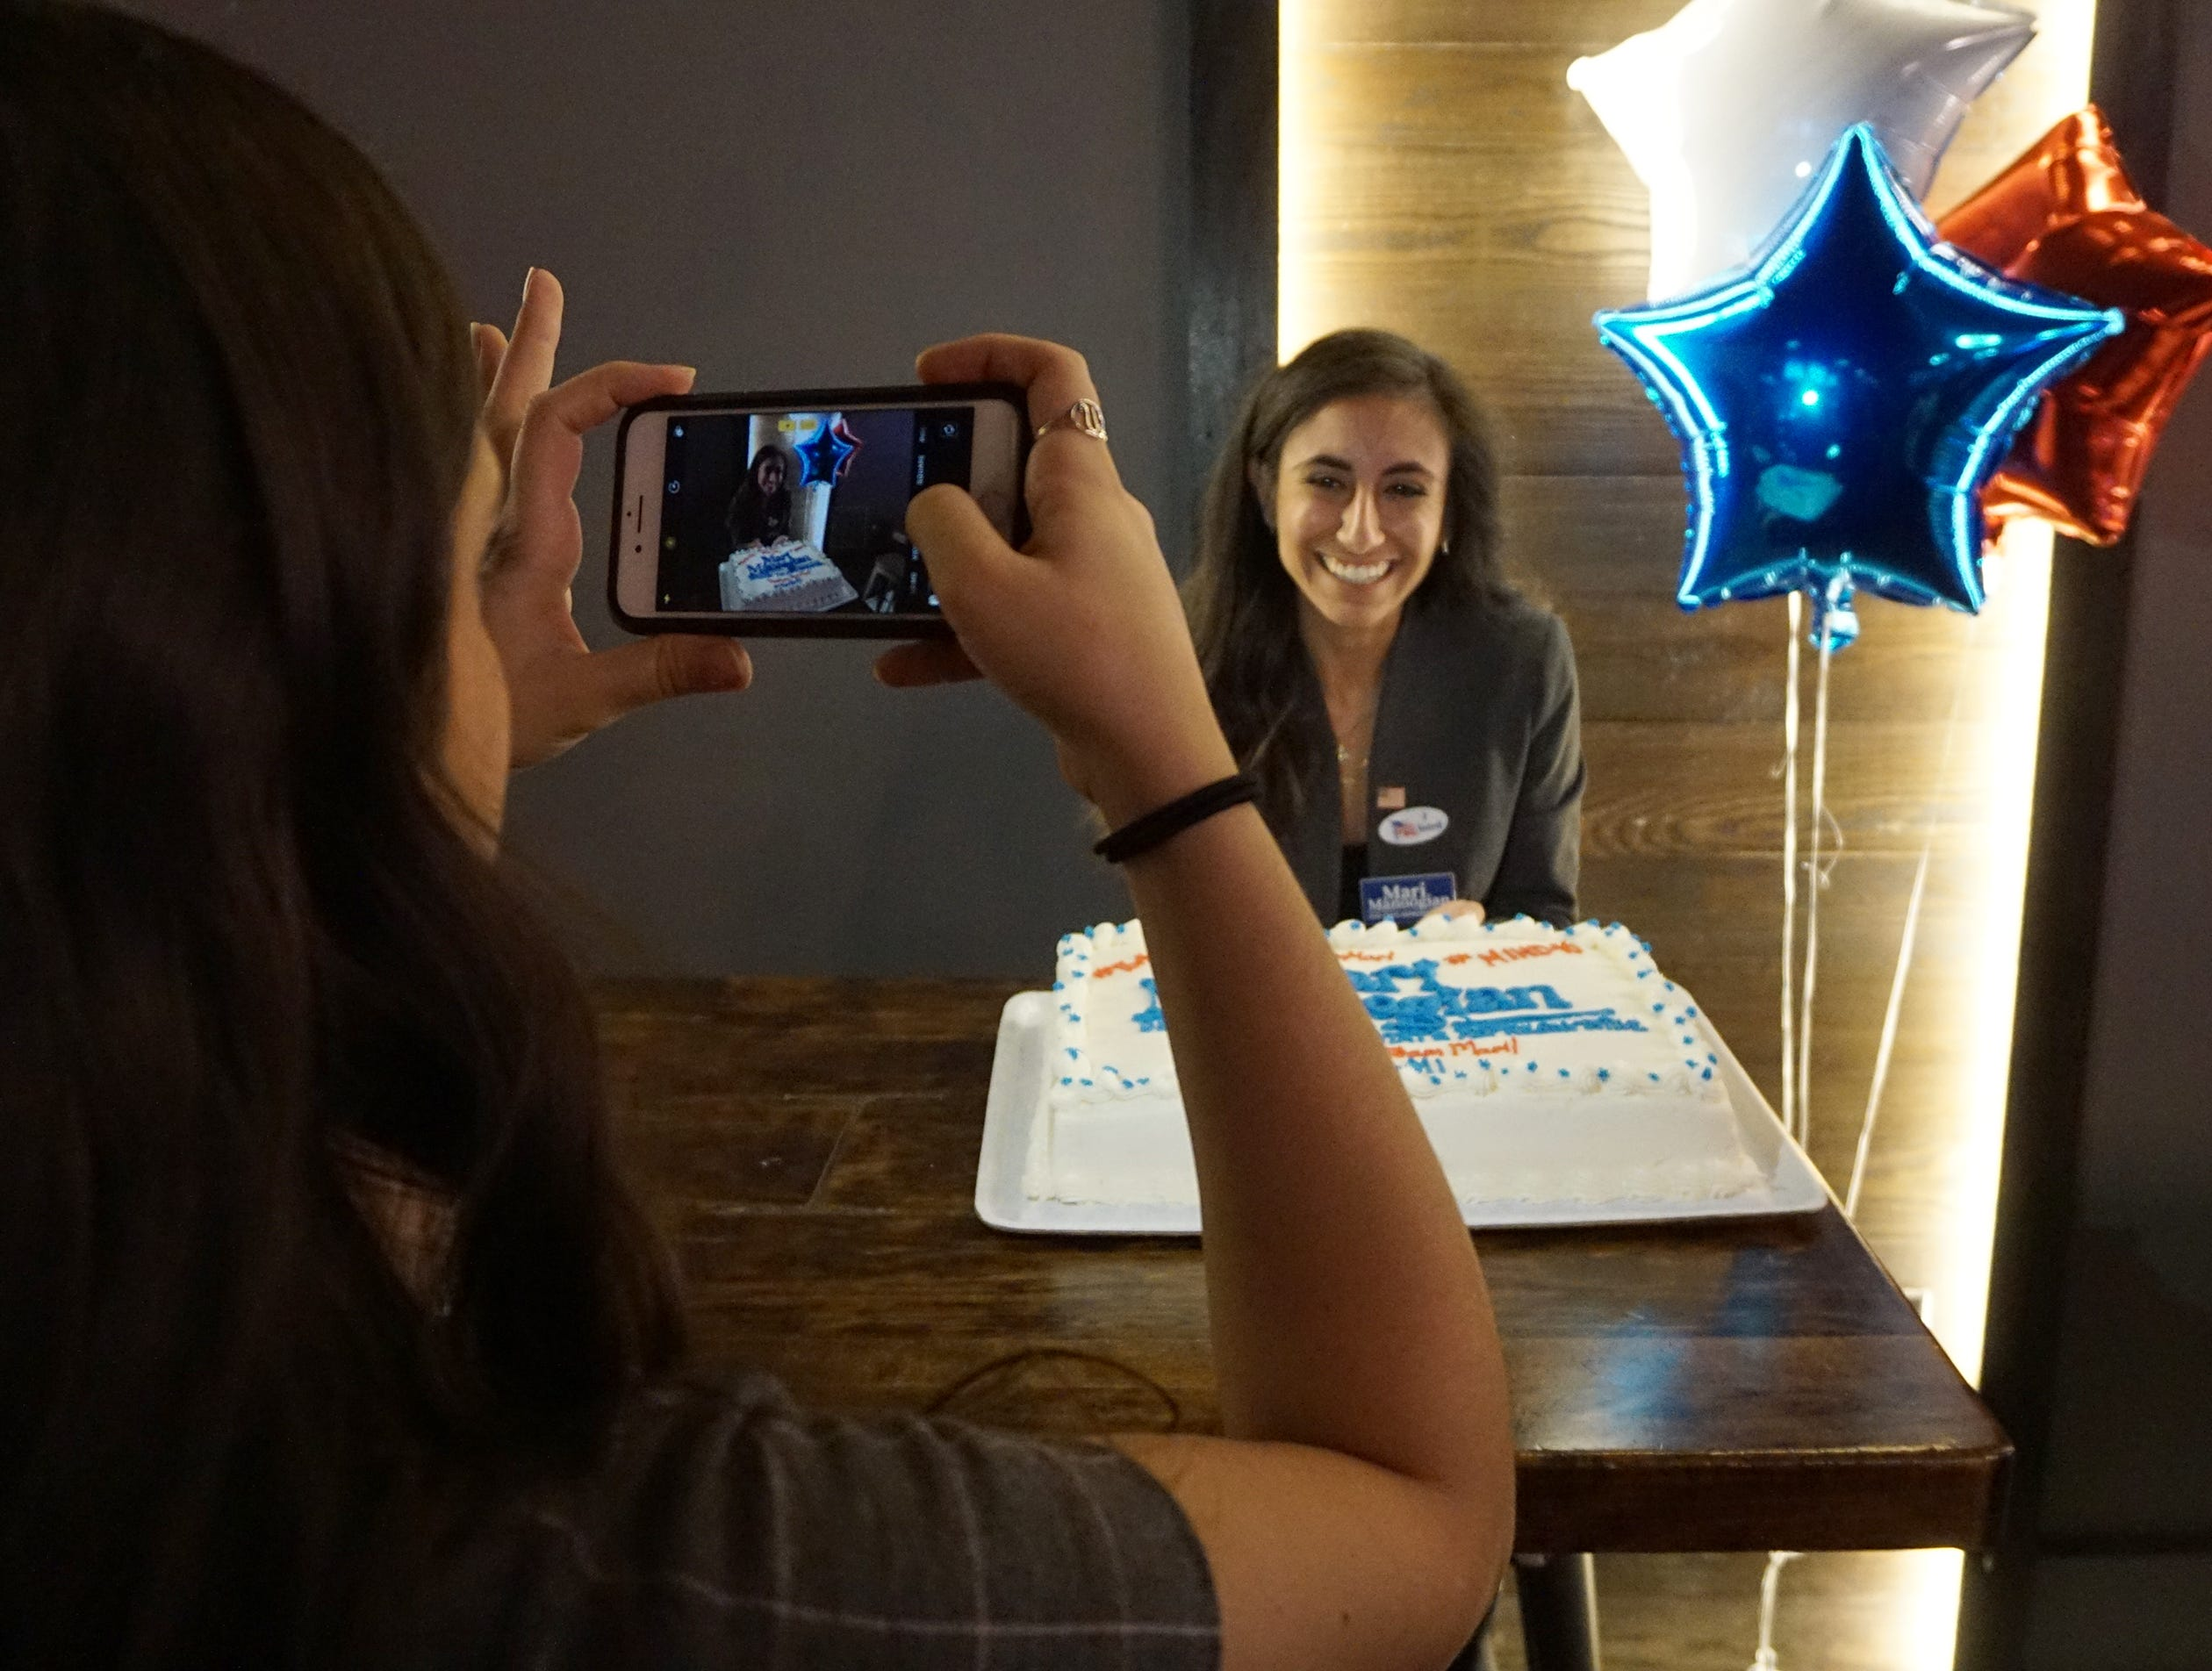 Mari Manoogian, candidate for state House District 40, poses for a photo with a celebration cake at her election night party at Dick O'Dow's Nov. 6, 2018.